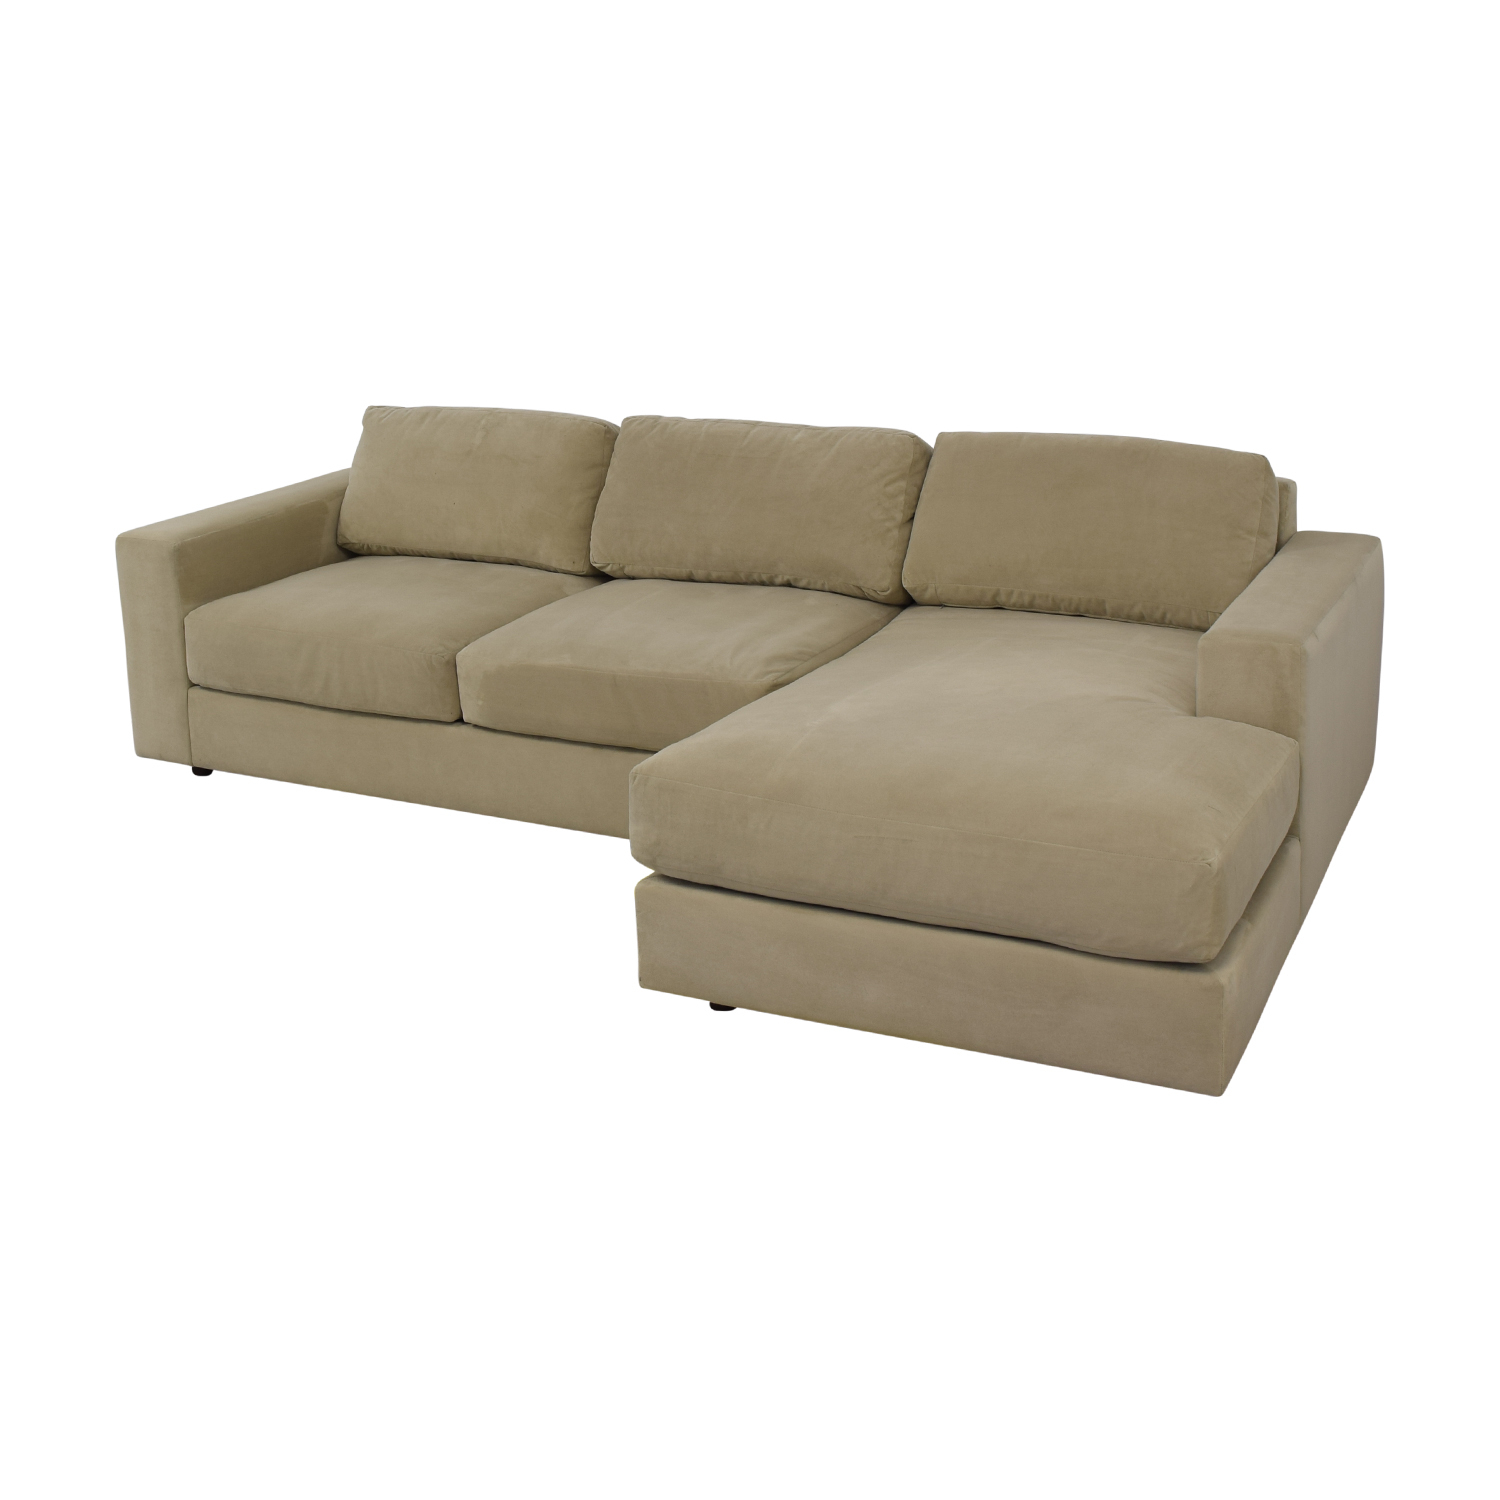 69% Off – West Elm West Elm Urban Chaise Sectional Sofa With Regard To West Elm Sectional Sofas (View 8 of 15)